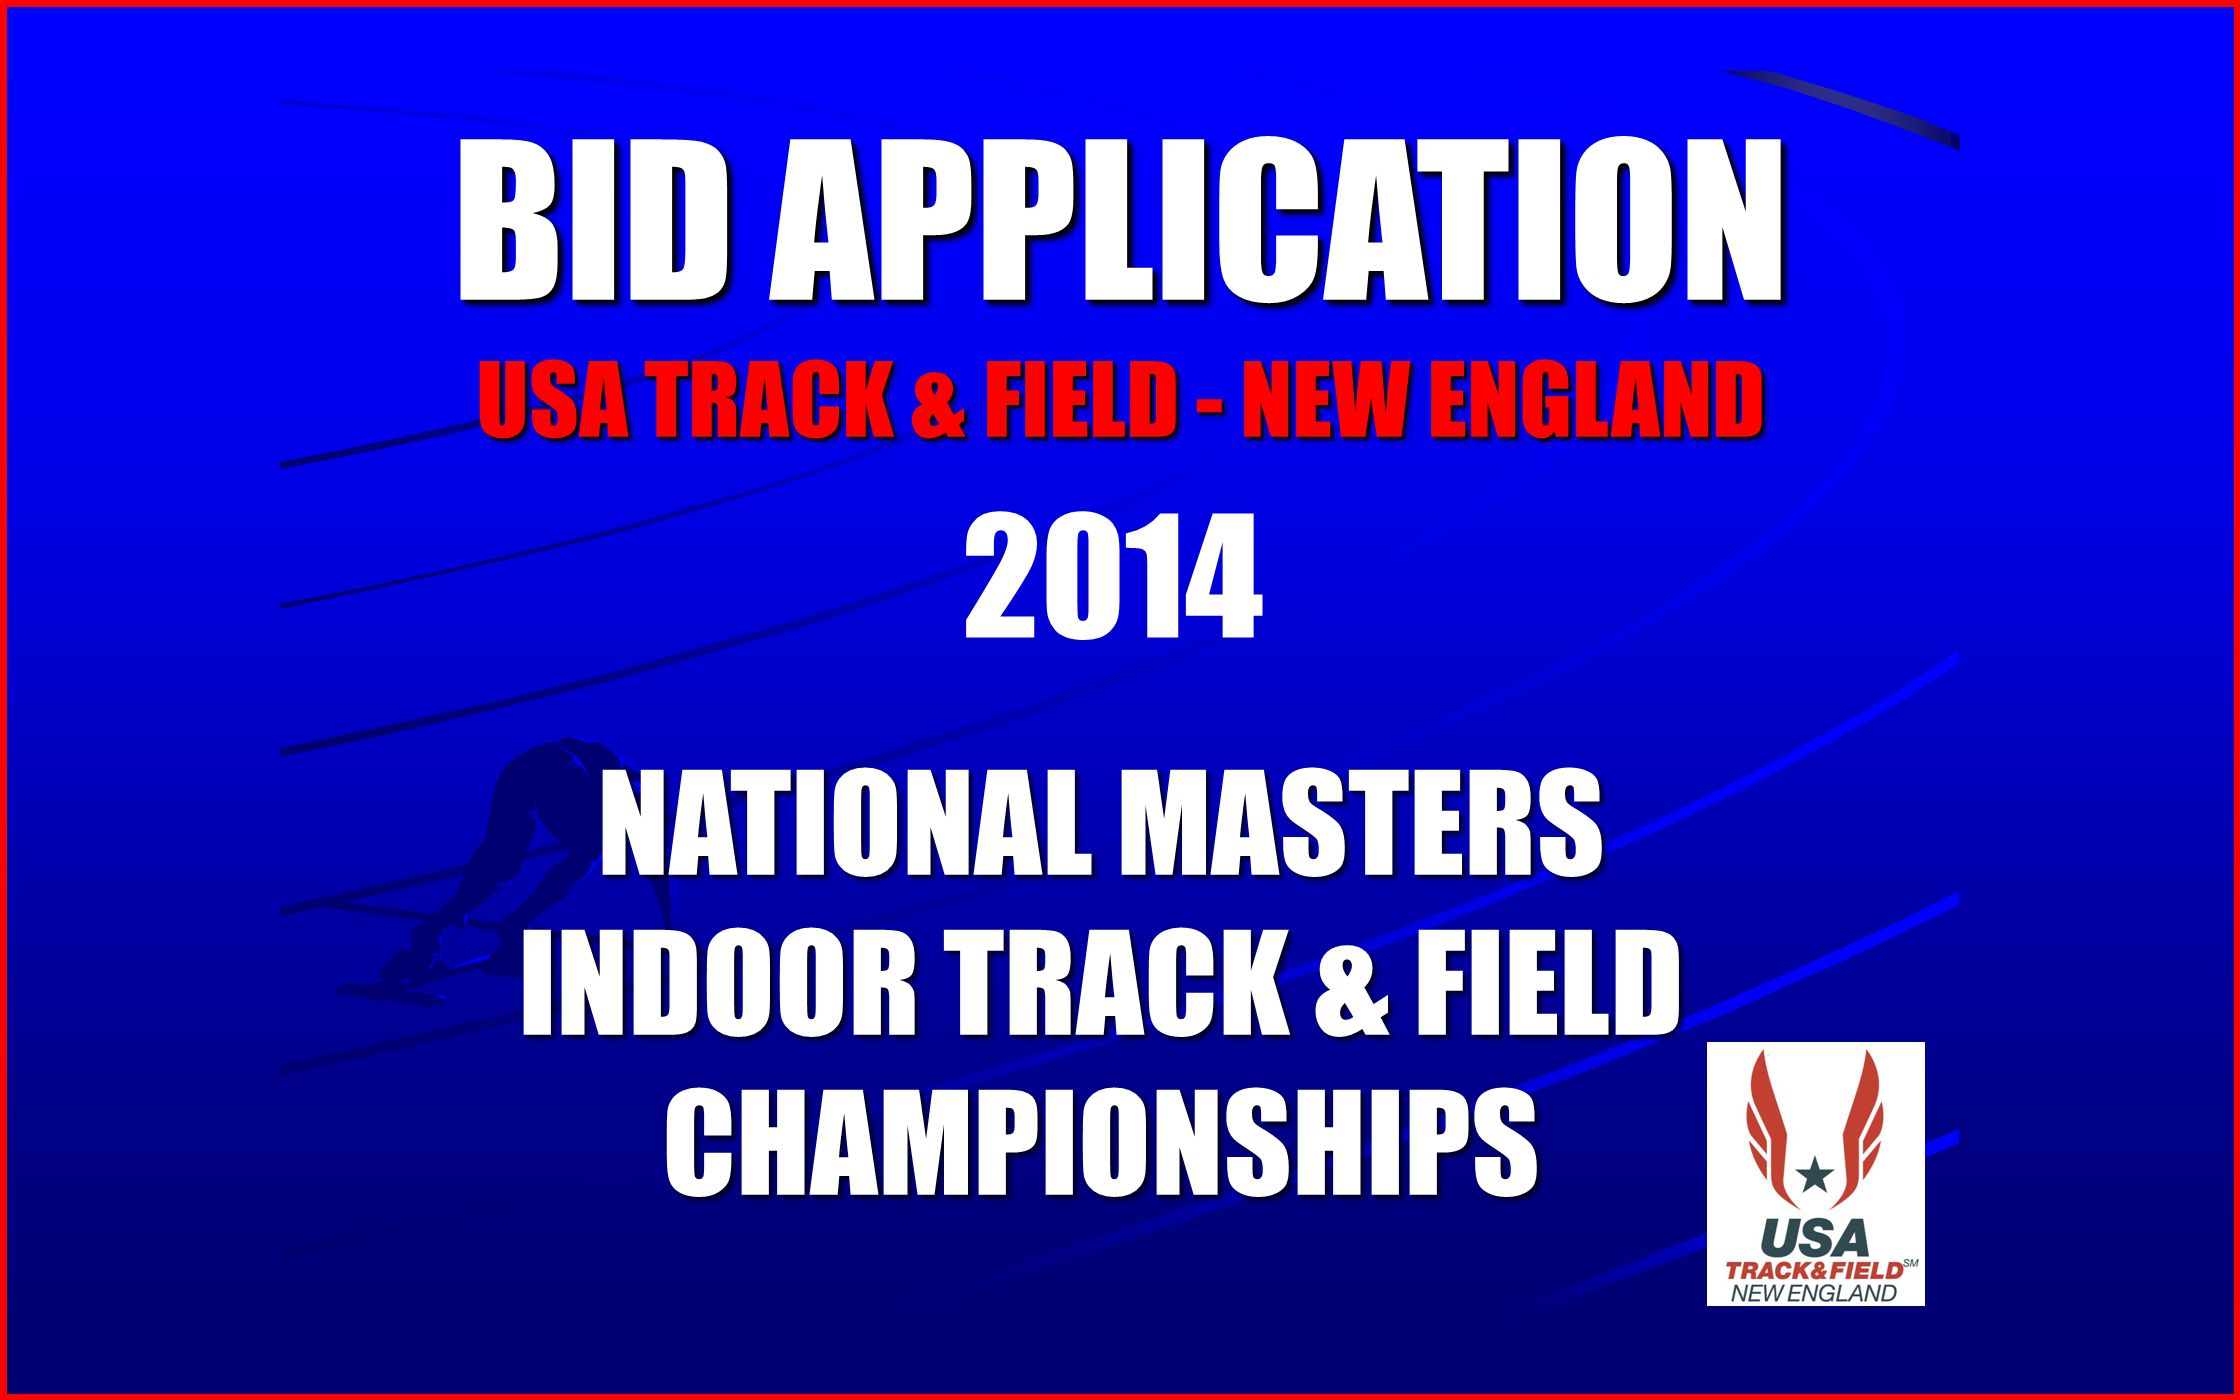 2 BID APPLICATION USA TRACK & FIELD - NEW ENGLAND BID APPLICATION USA TRACK & FIELD - NEW ENGLAND NATIONAL MASTERS INDOOR TRACK & FIELD CHAMPIONSHIPS NATIONAL MASTERS INDOOR TRACK & FIELD CHAMPIONSHIPS 2014